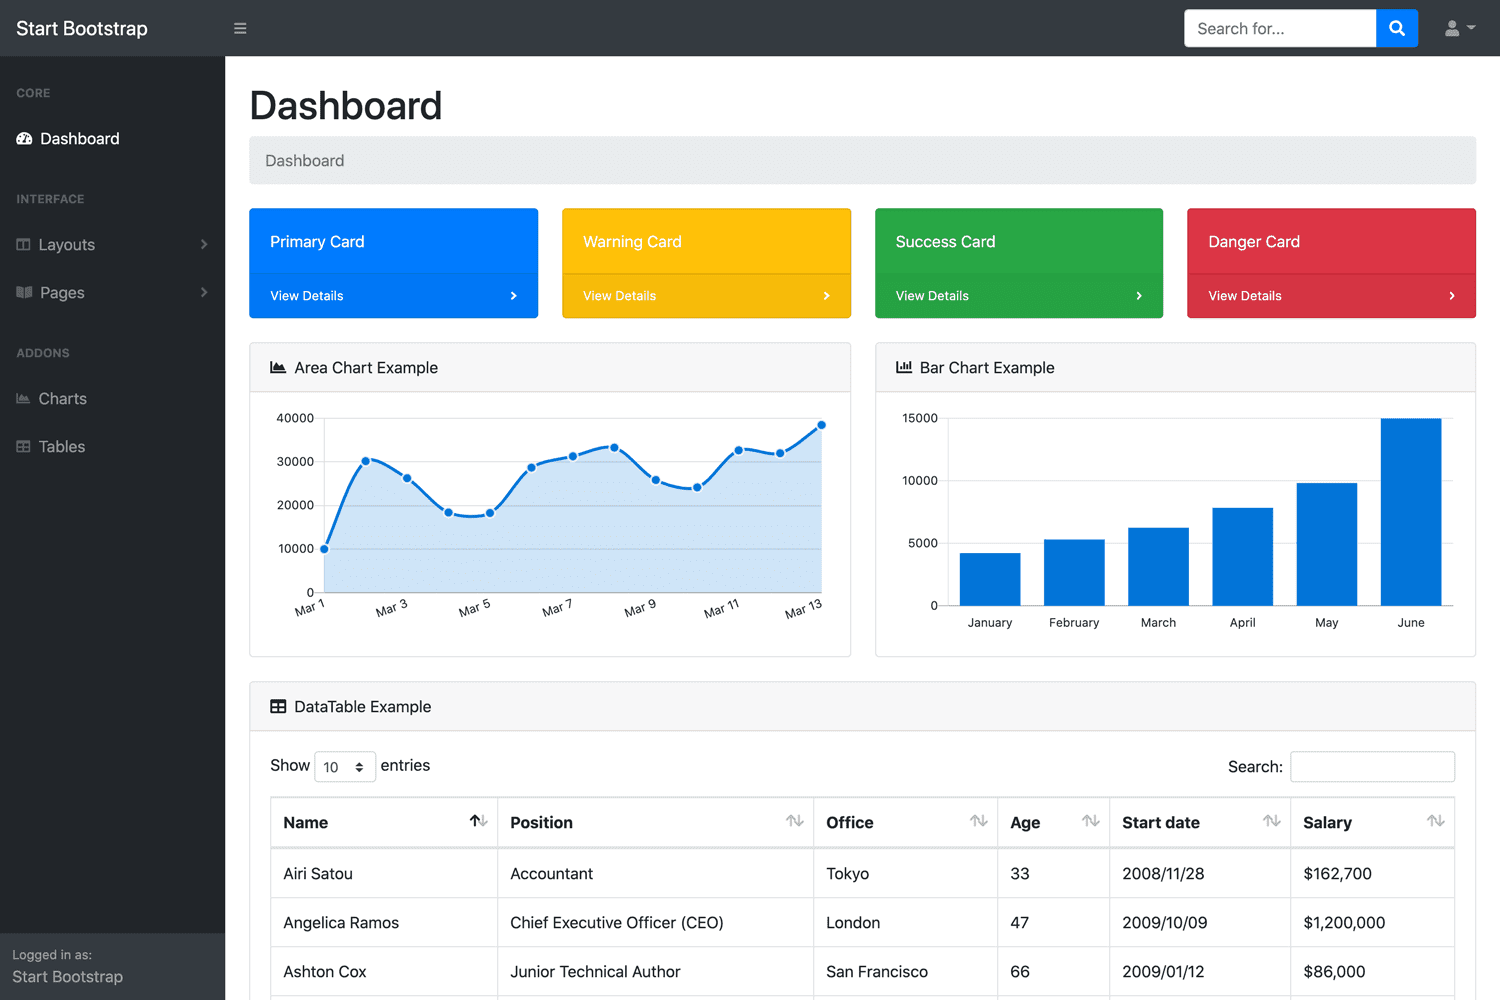 Professional Dashboard Template With Bootstrap 5/4 - SB Admin